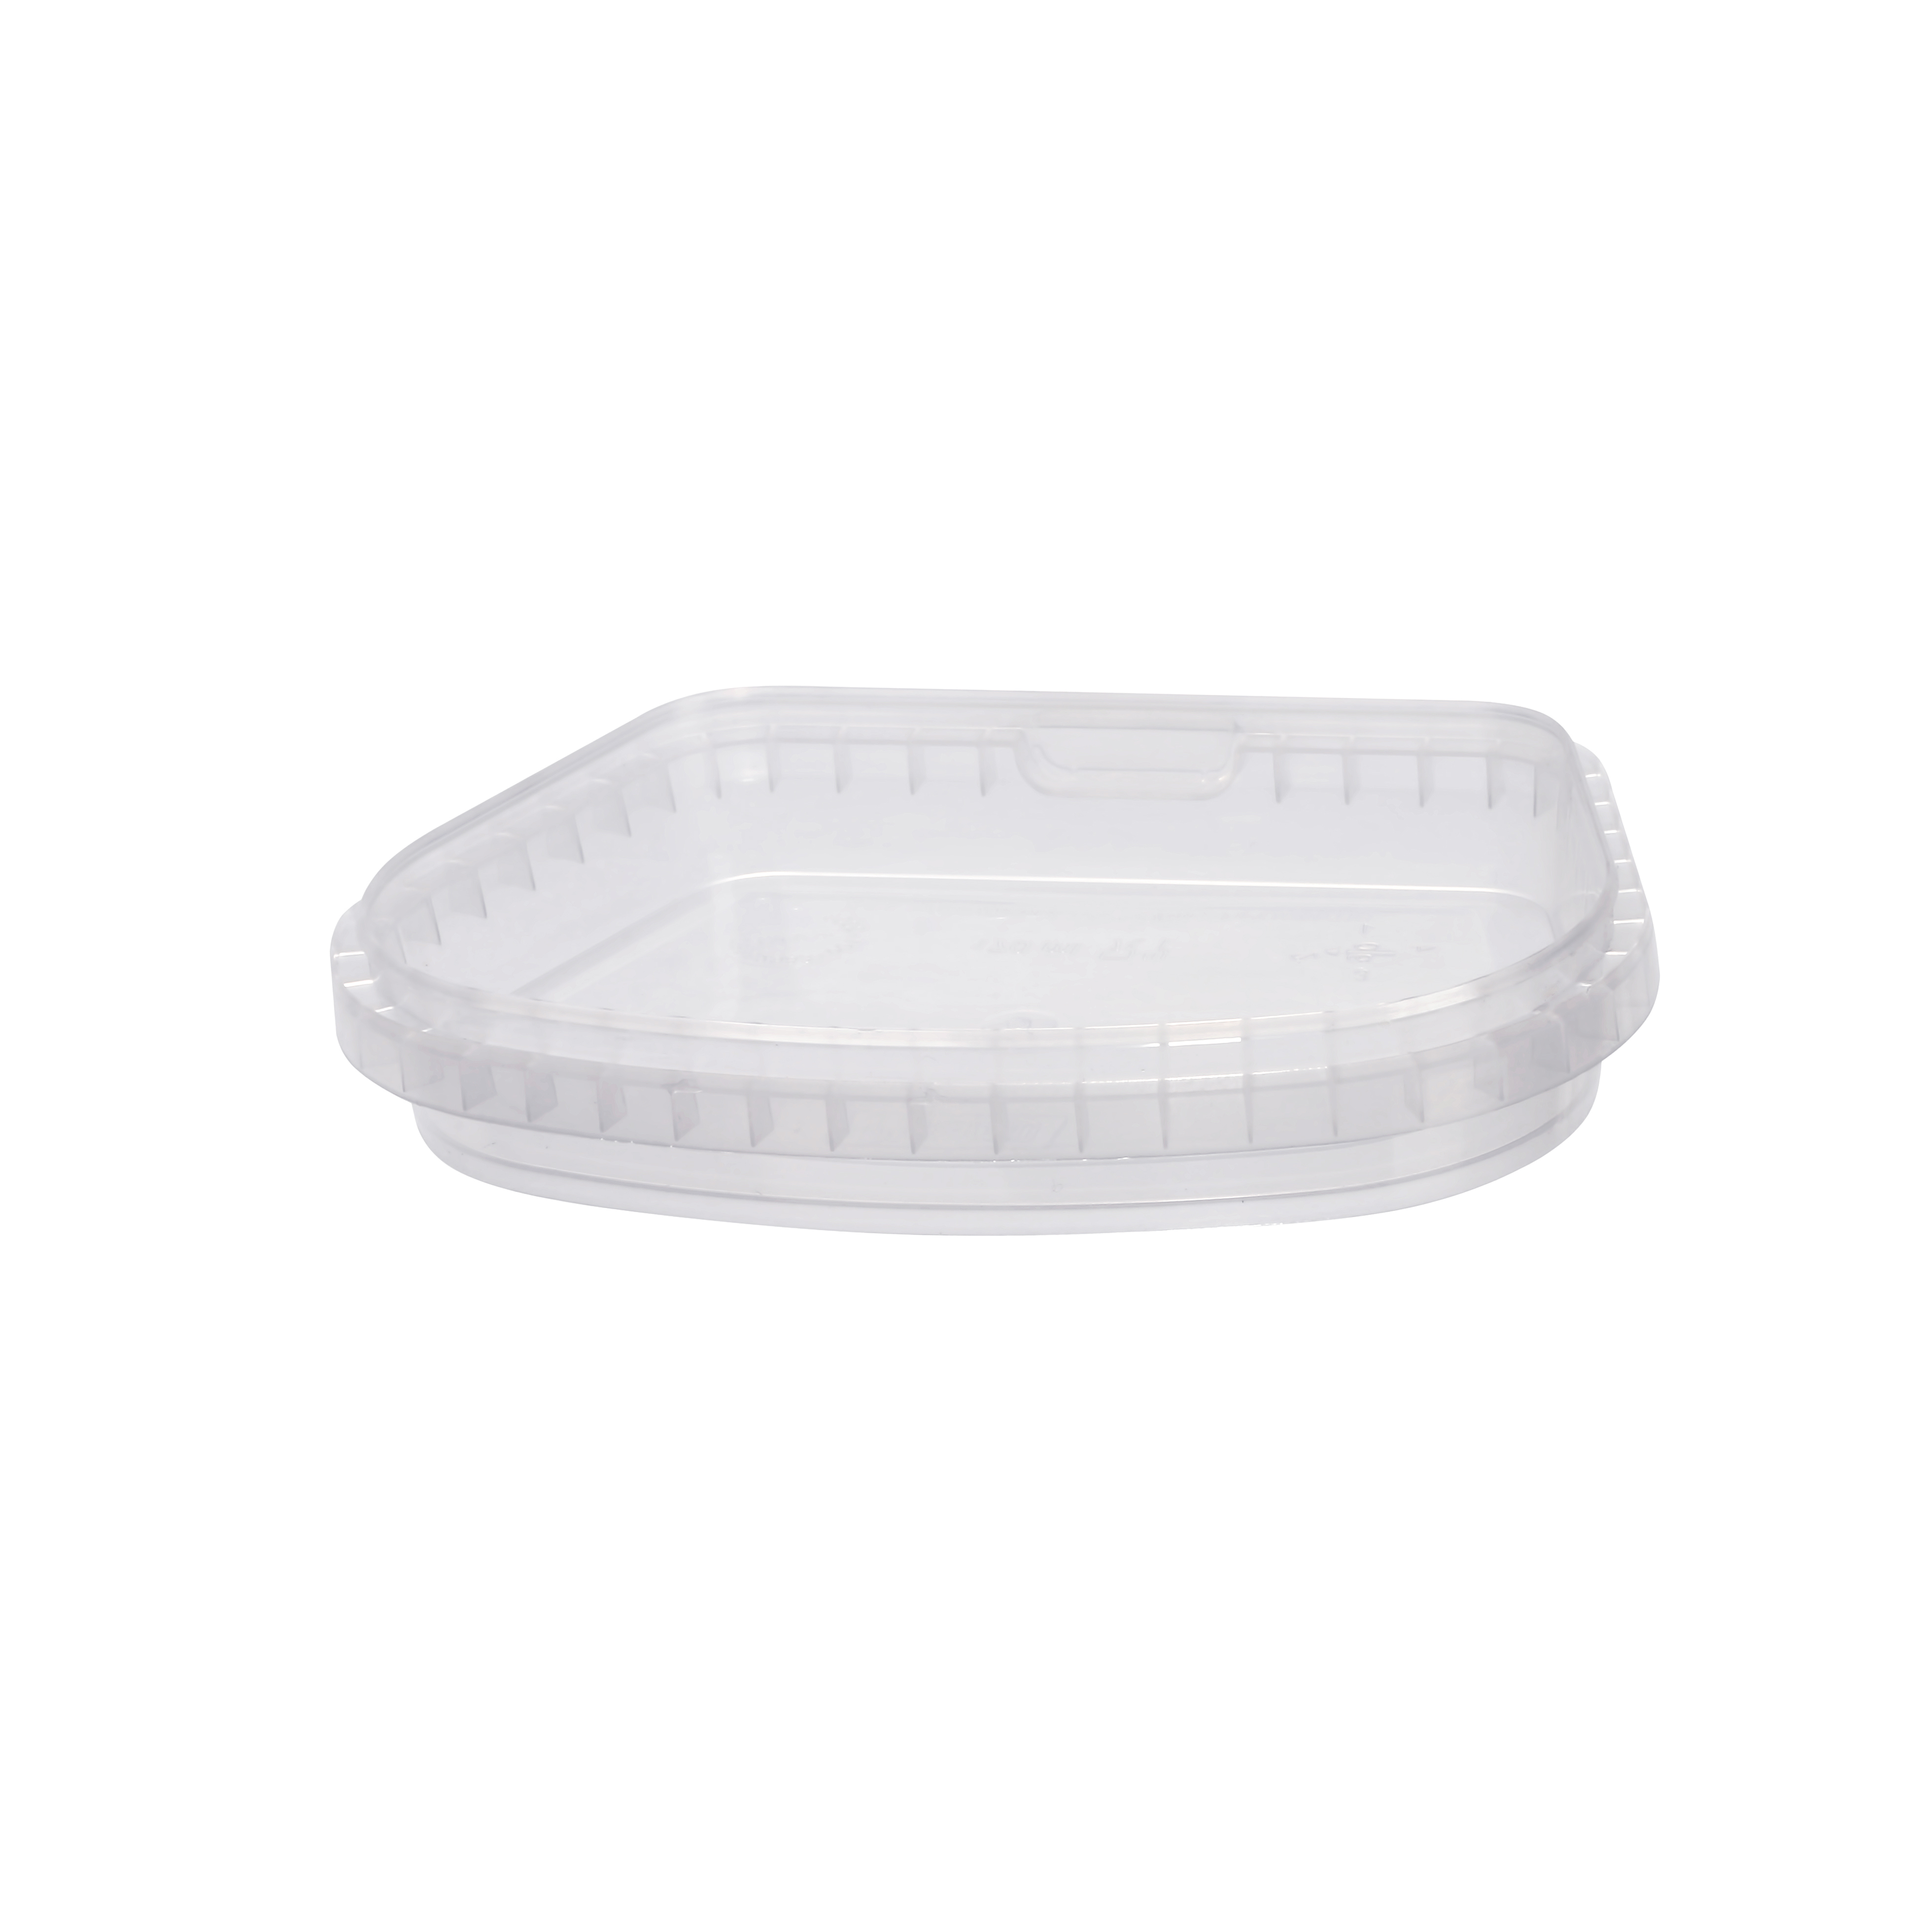 Food plastic packaging. Tamper evident Plastic food containers - 170 ml